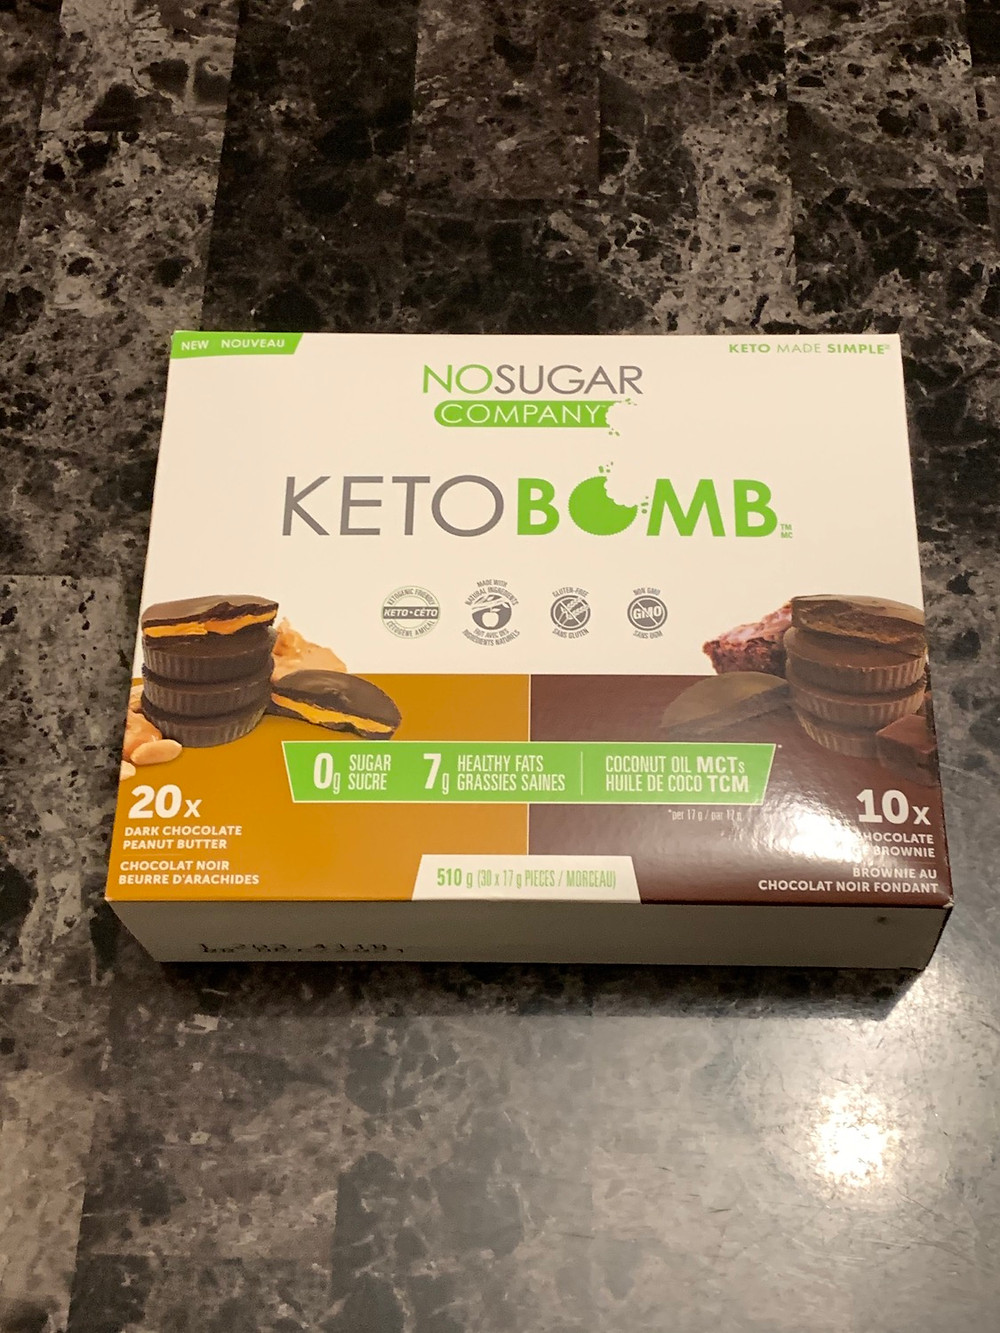 Costco No Sugar Company Keto Bomb